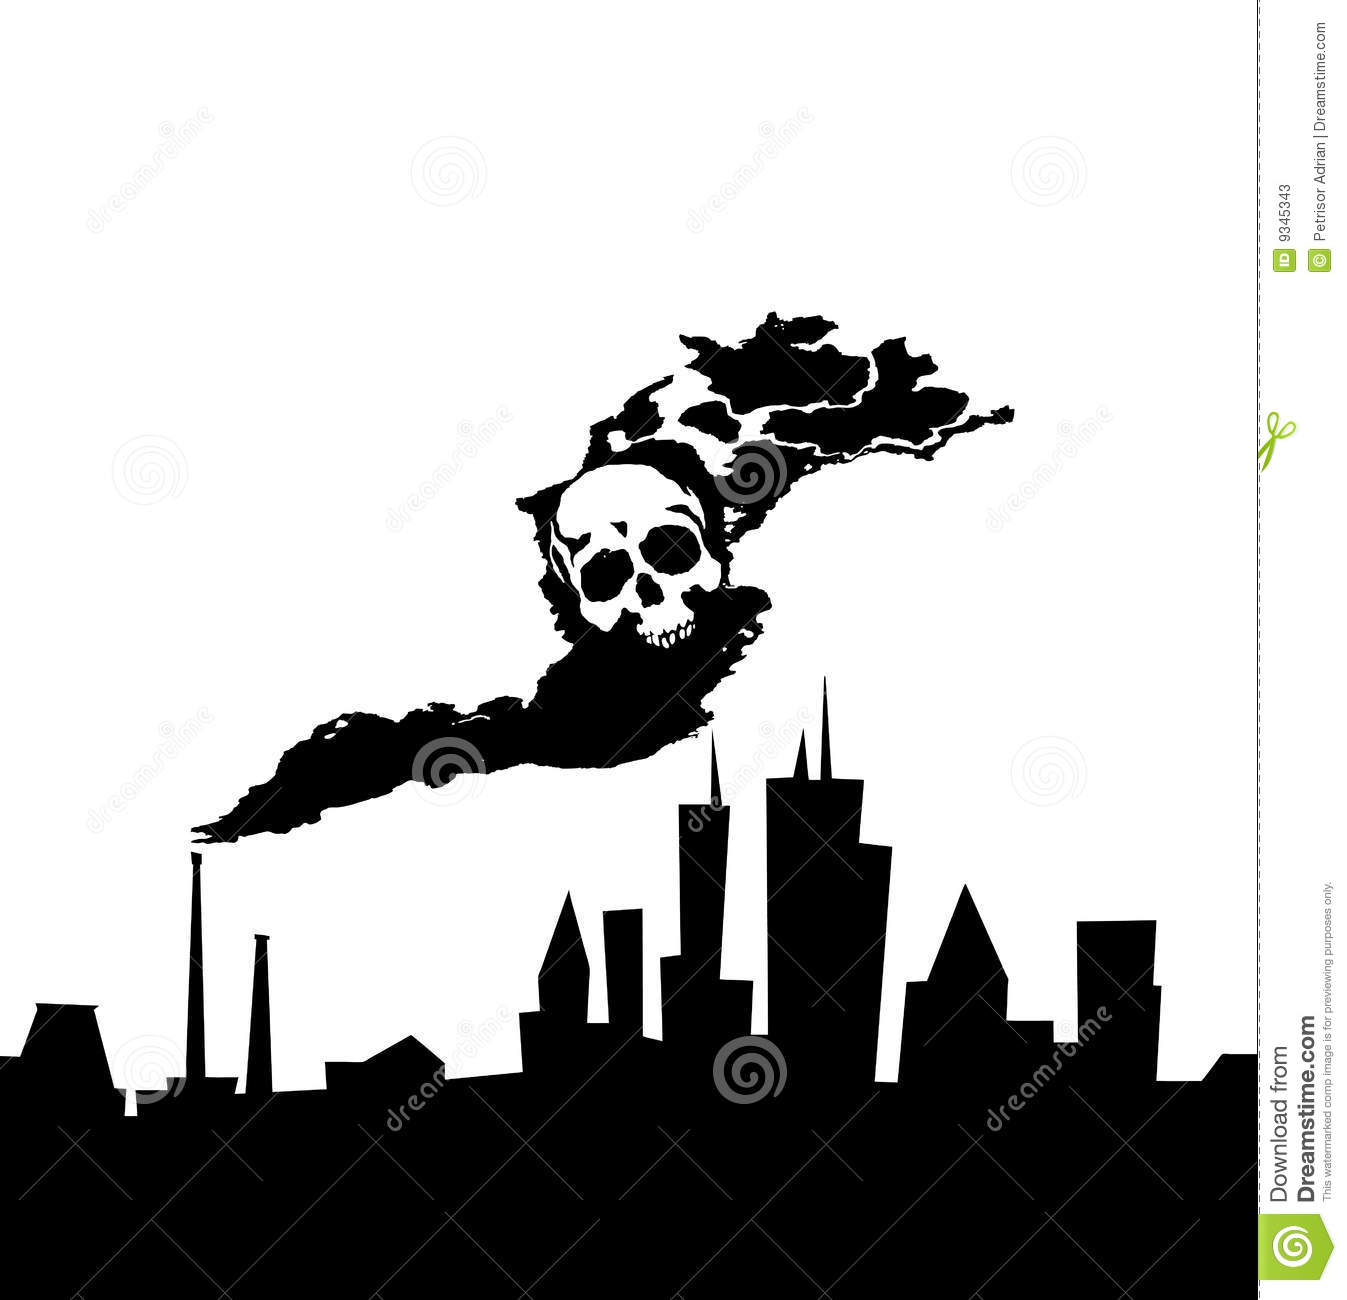 industrial pollution clipart - photo #24